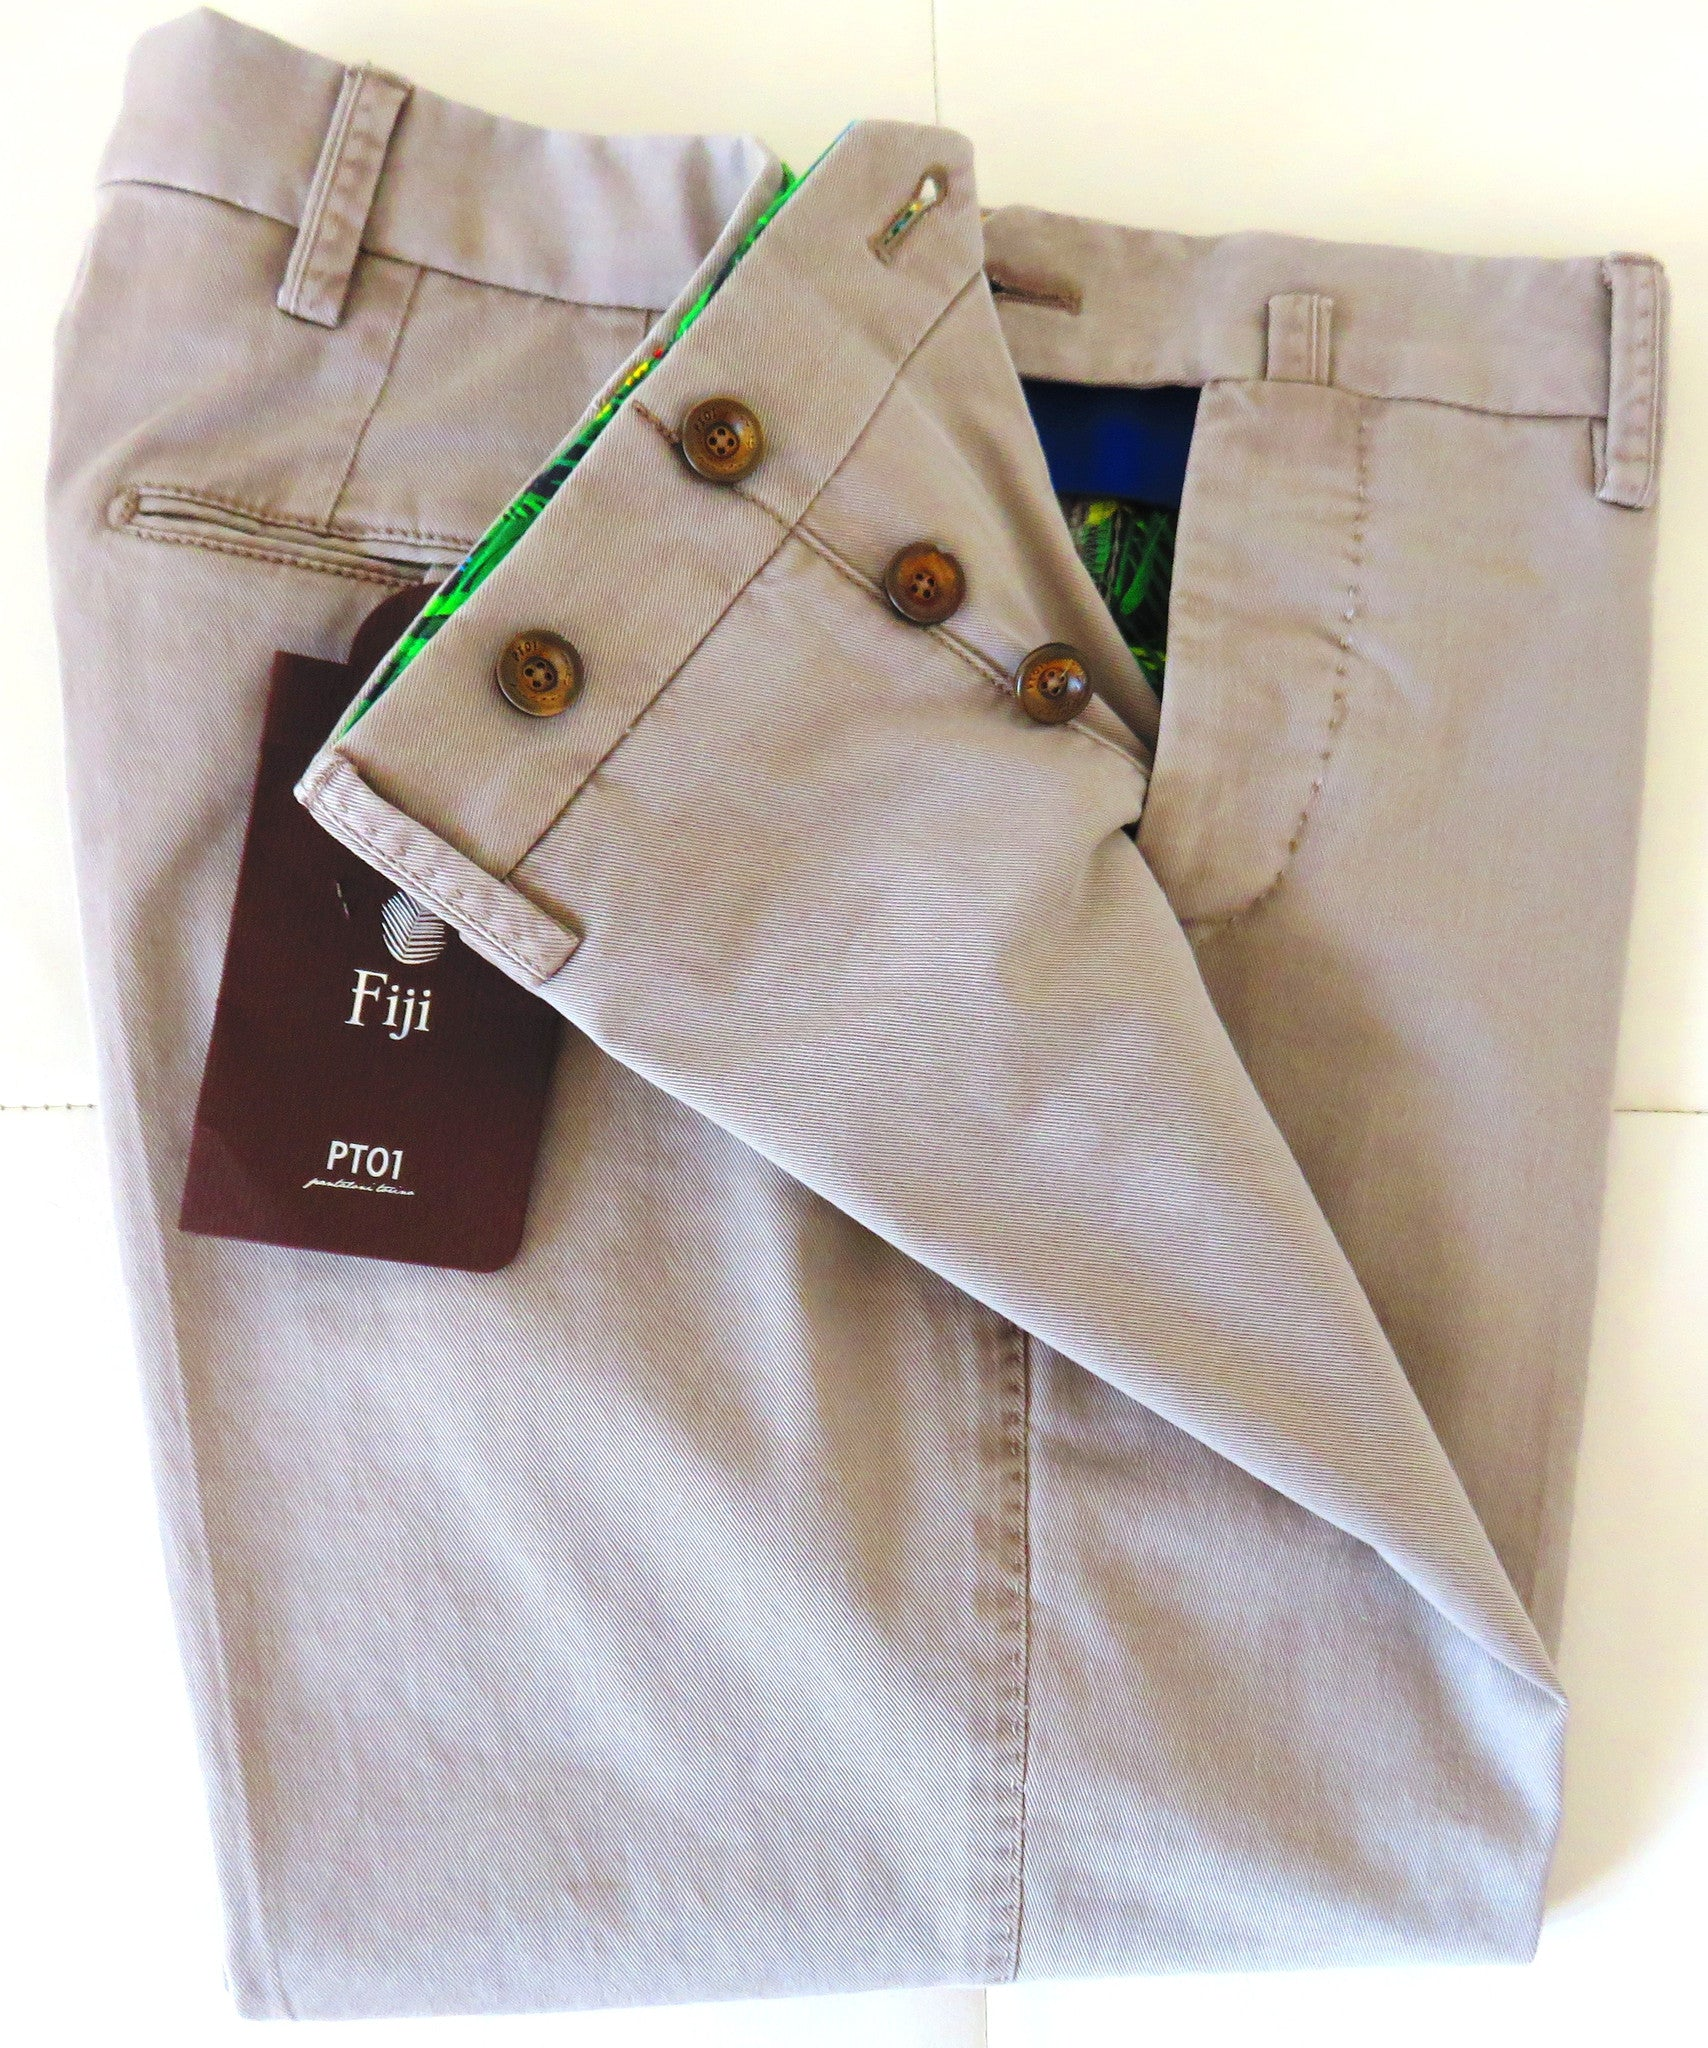 PT01 Pantaloni Torino - Model FIJI (various colours)